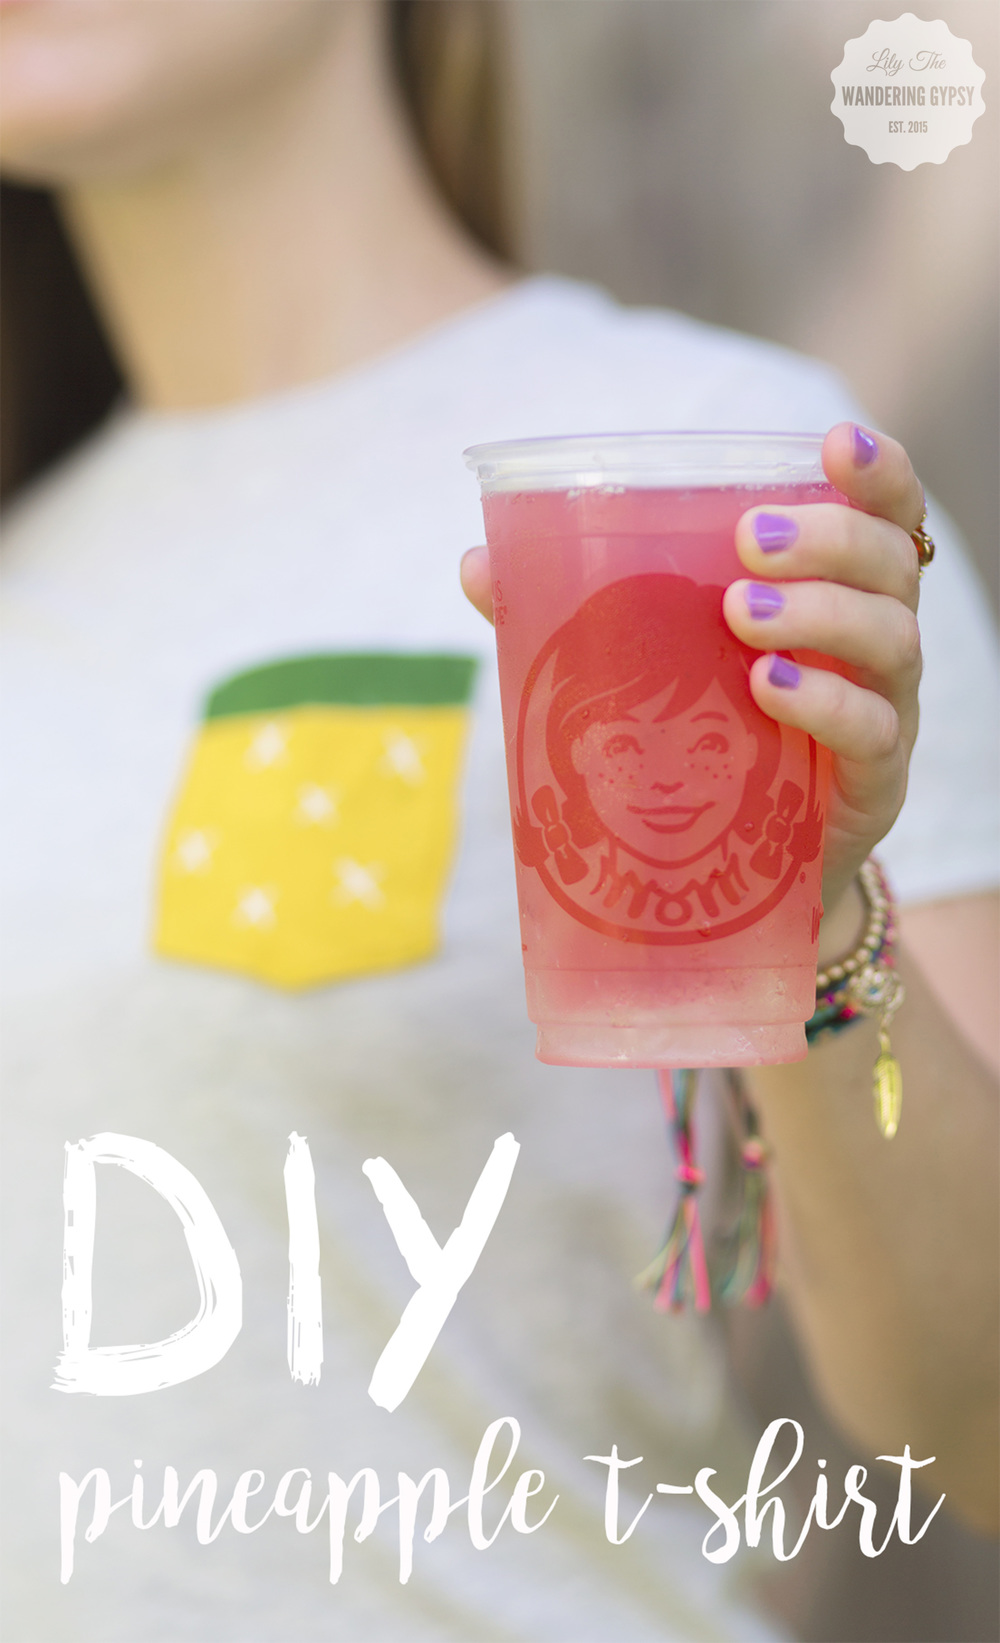 DIY Pineapple Tee!